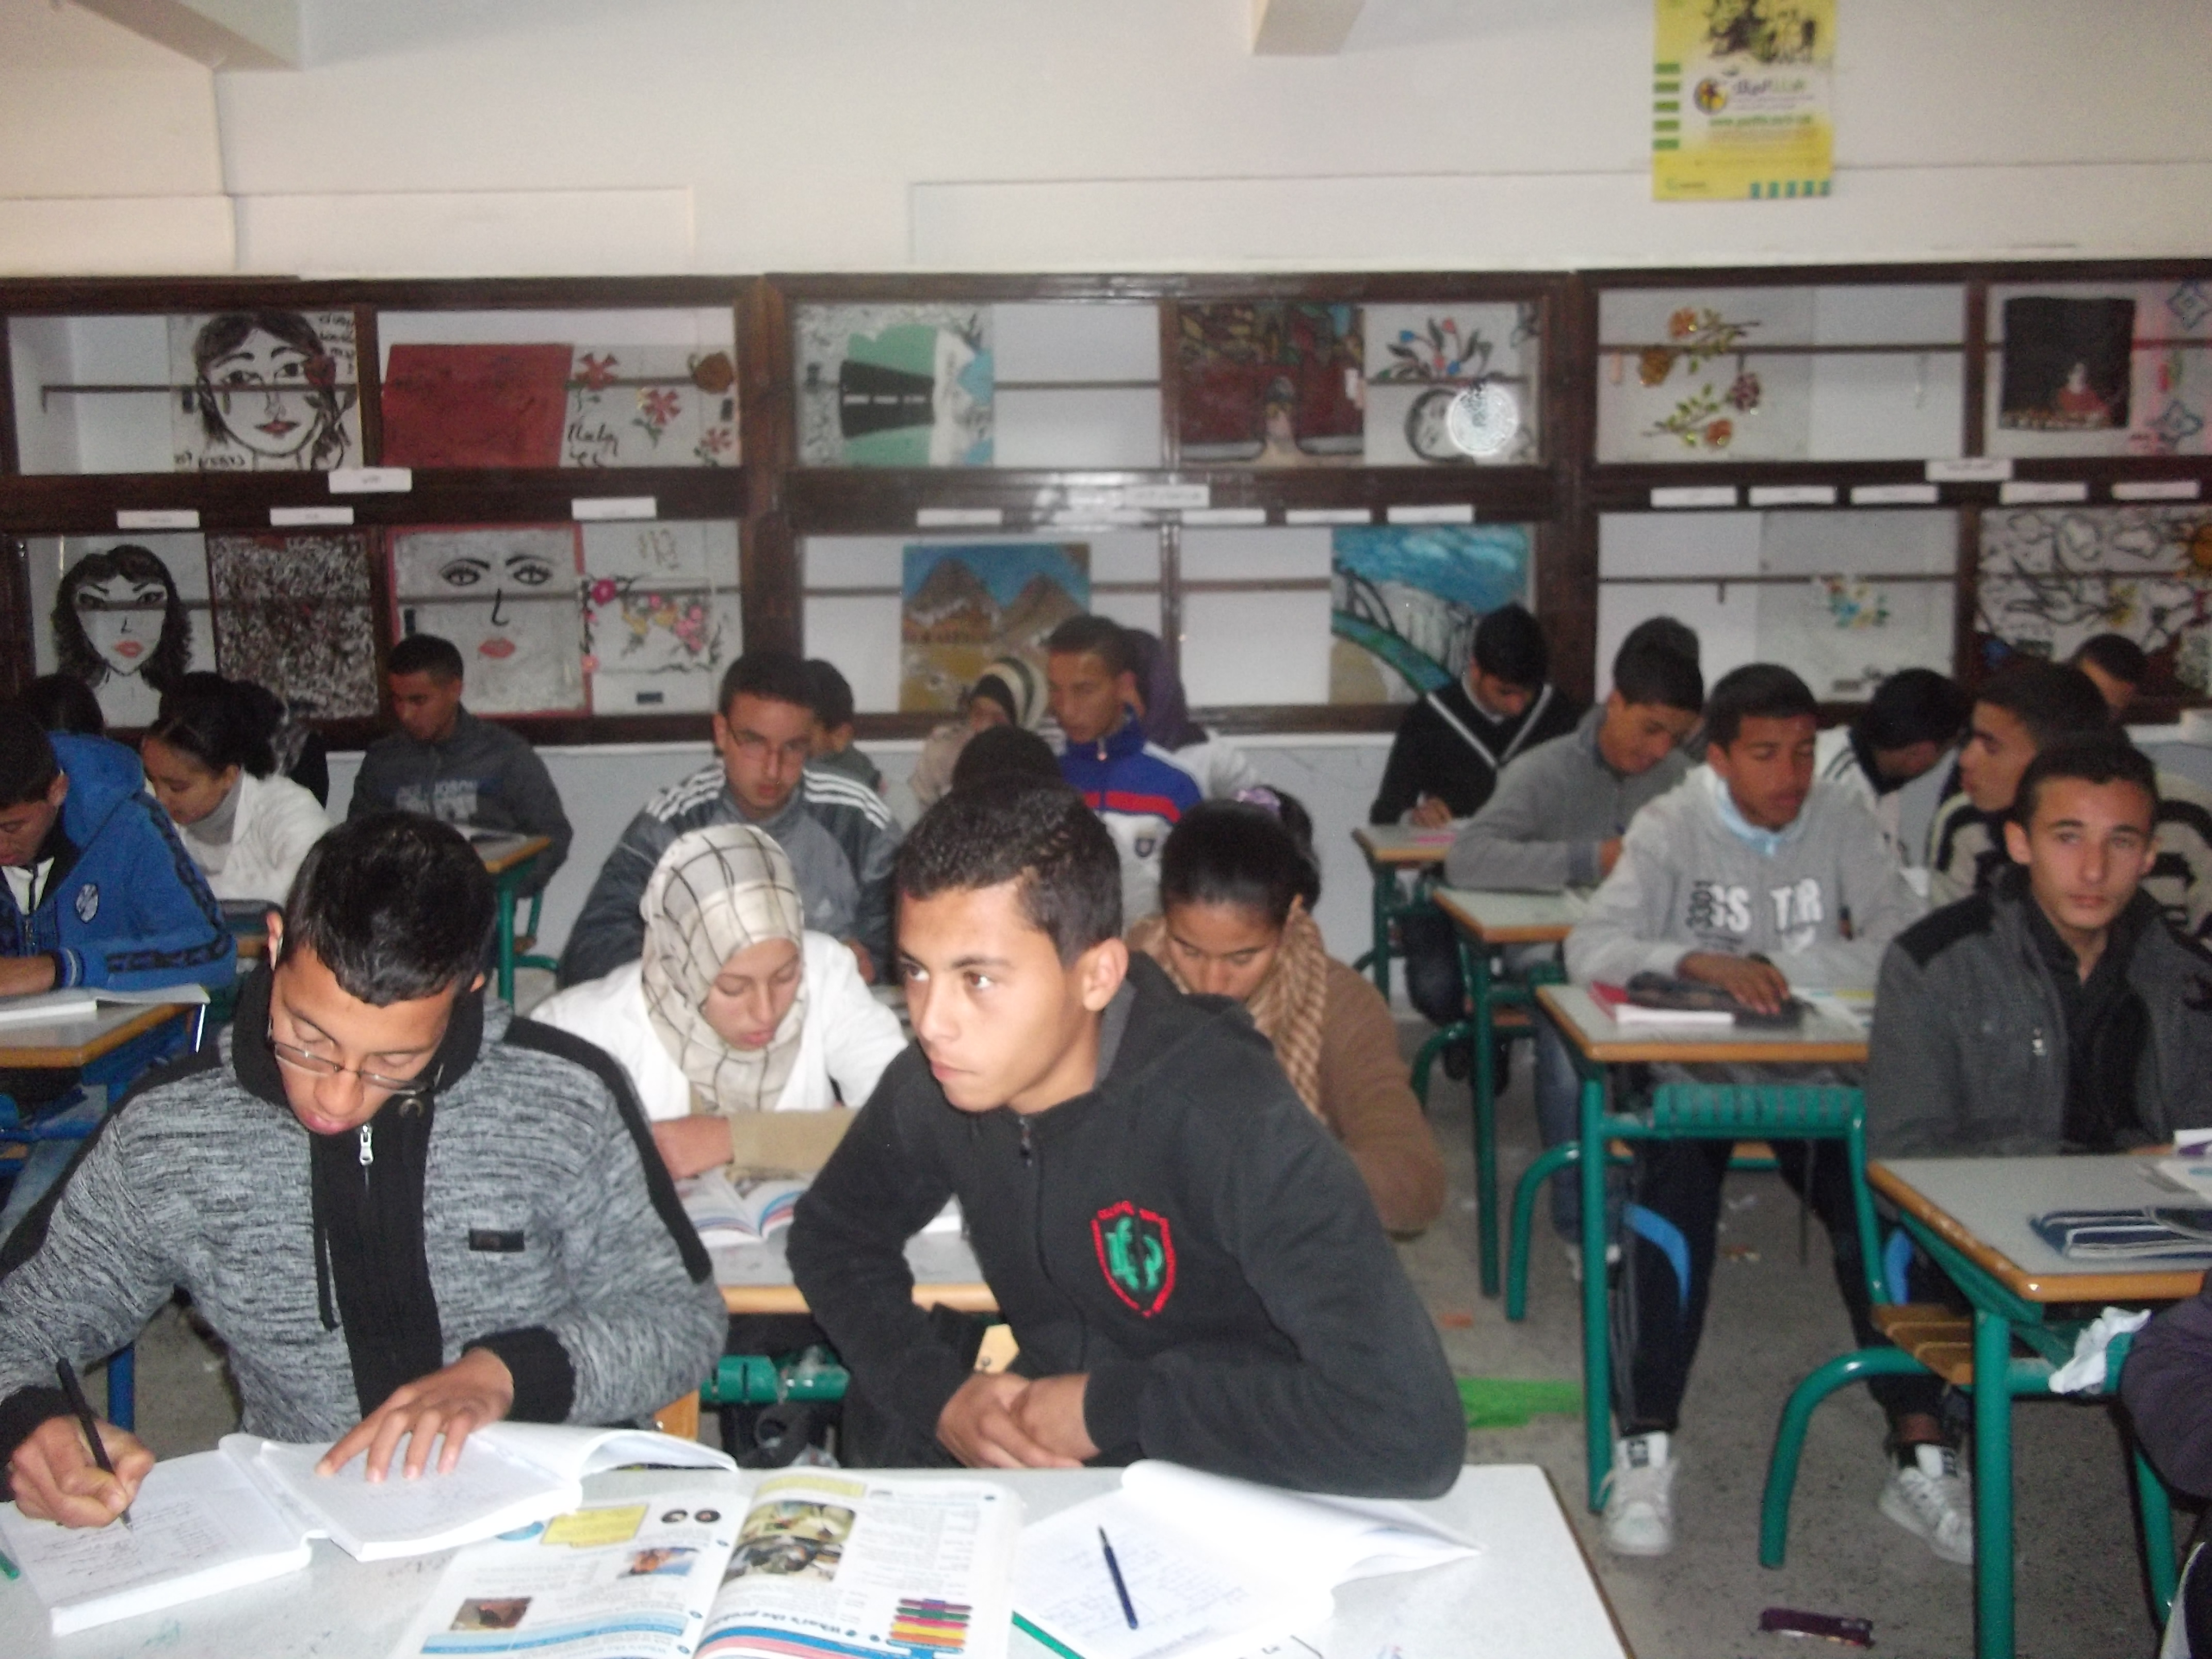 Students in a classrom in Morocco (Photo by Izza Fartmis)